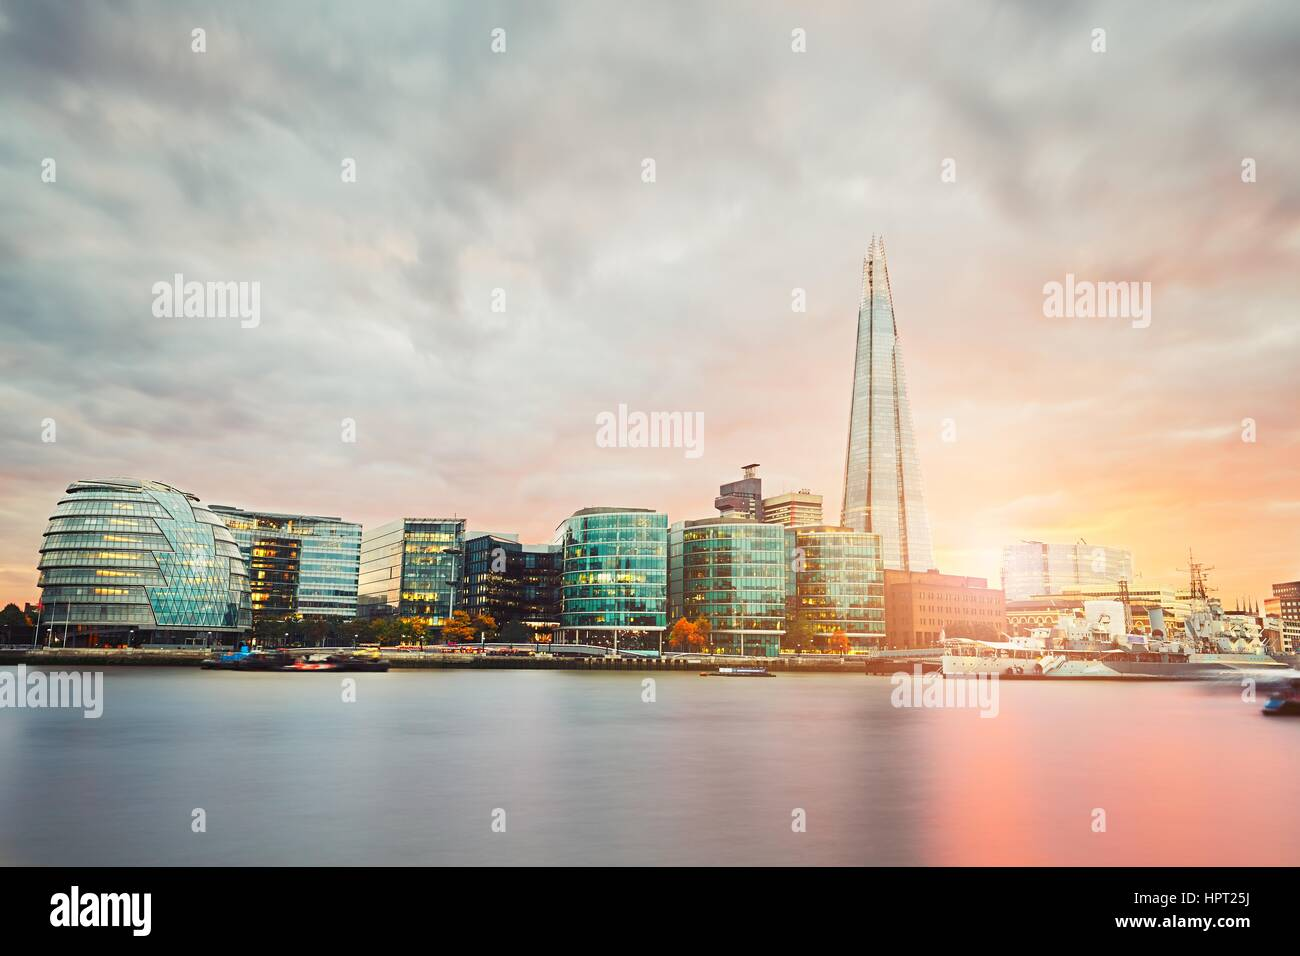 London skyline with City Hall and Shard at the sunset - The United Kingdom of Great Britain and Northern Ireland - Stock Image